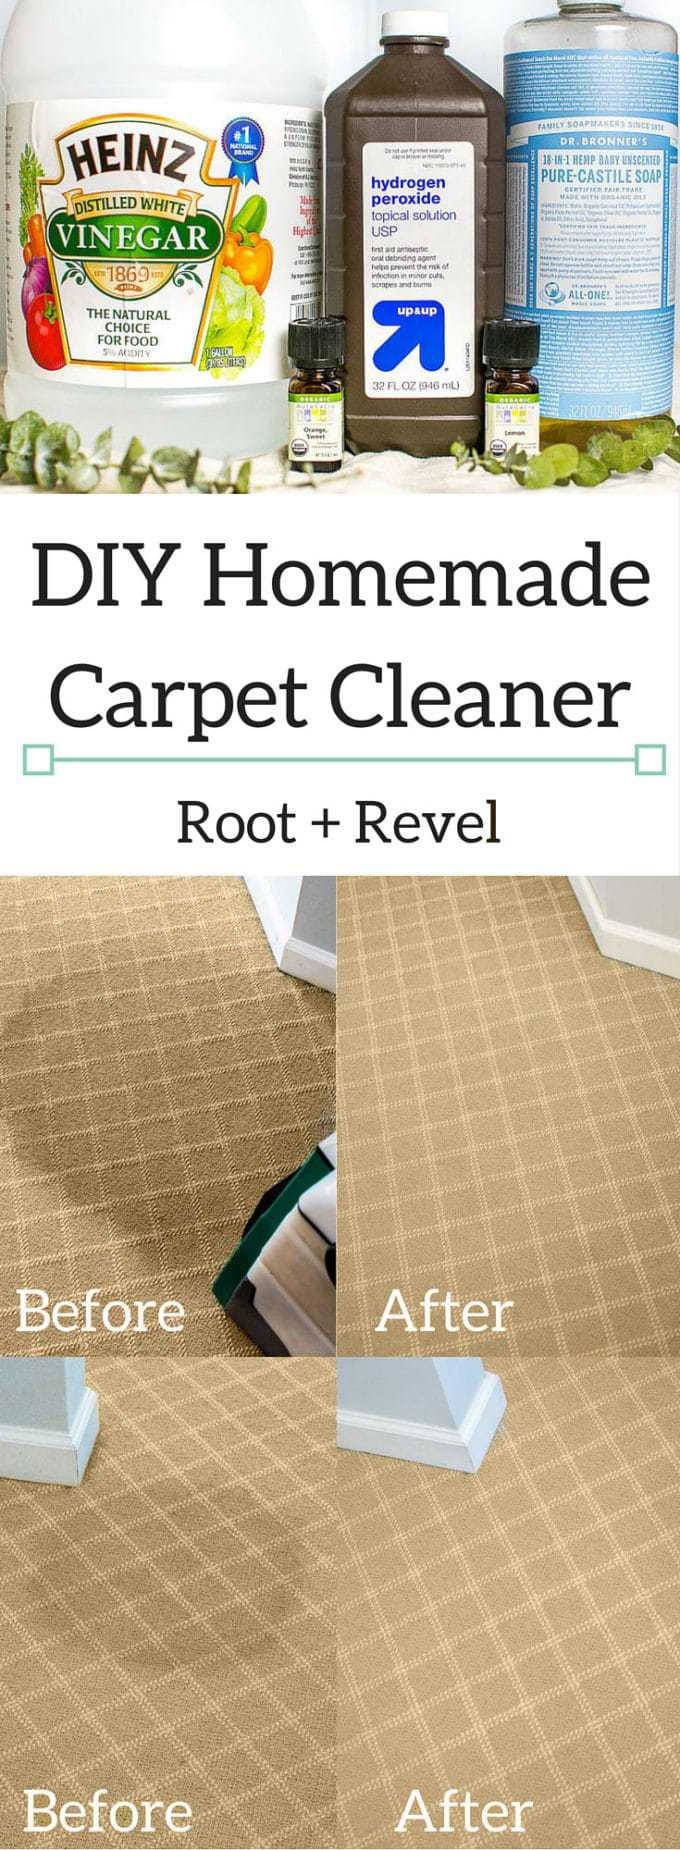 DIY Homemade Carpet Cleaner ingredients and before and after photos.